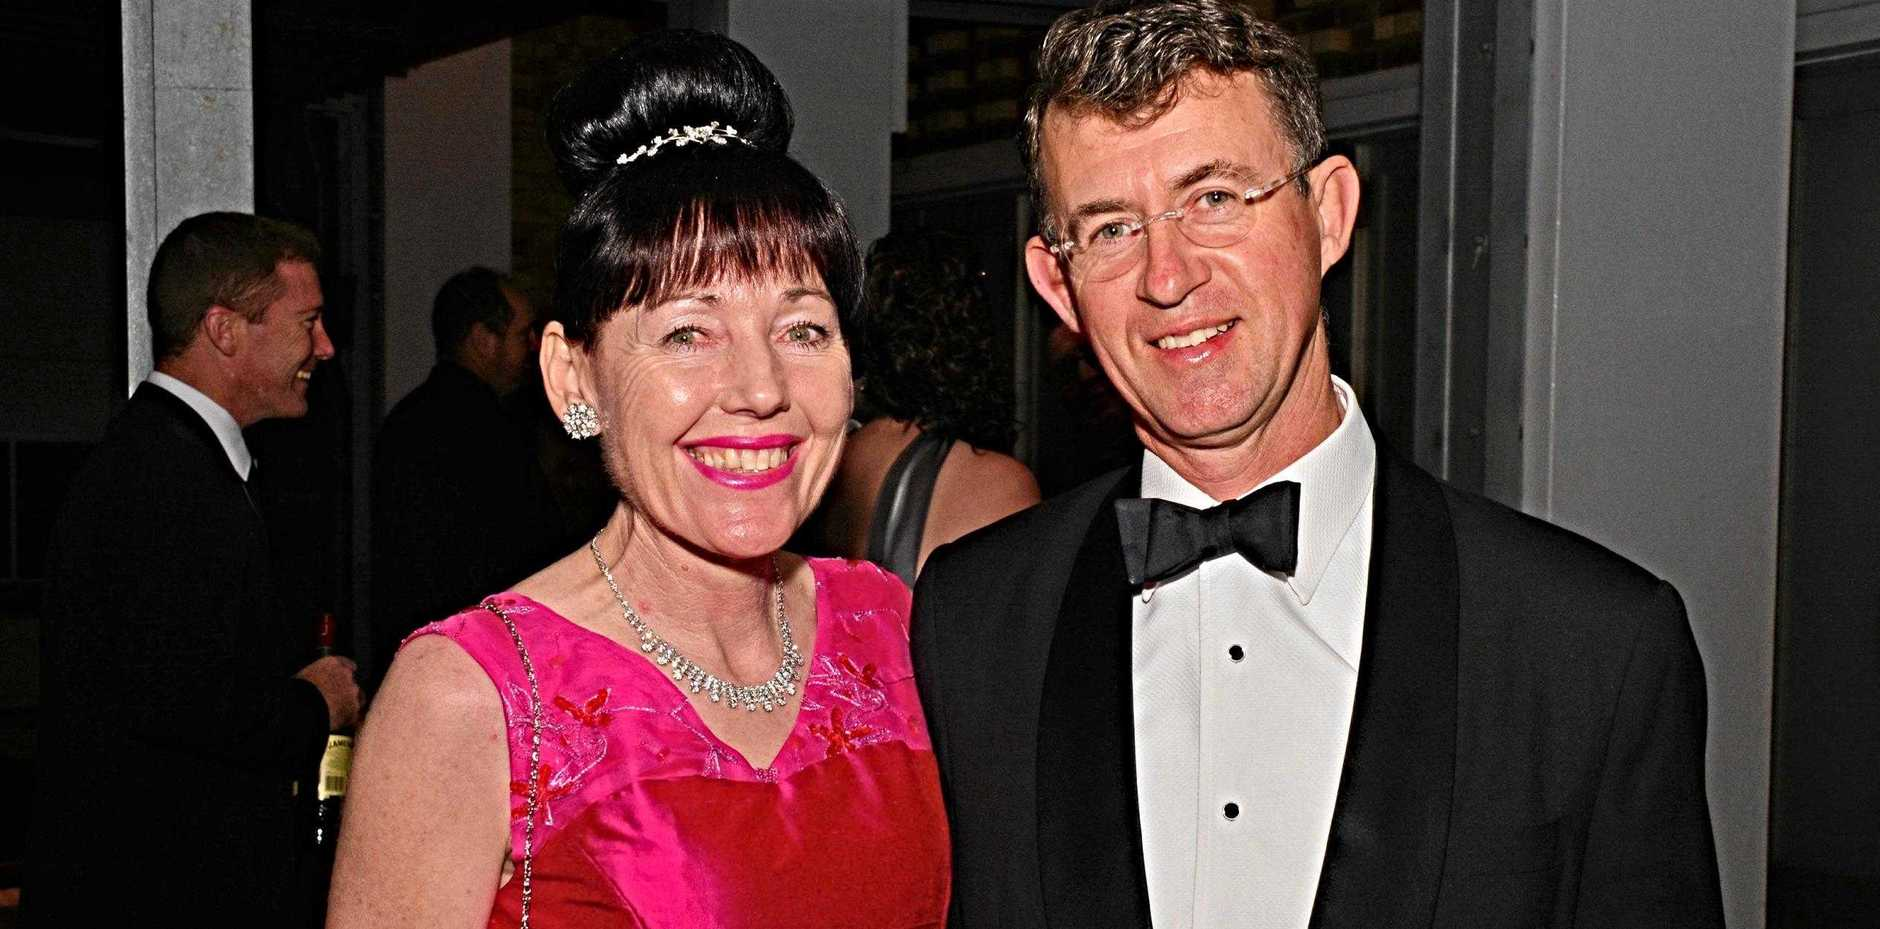 REMEMBERING: South Burnett Regional Deputy Mayor Kathy Duff and former Southern Downs councillor Jamie Mackenzie.